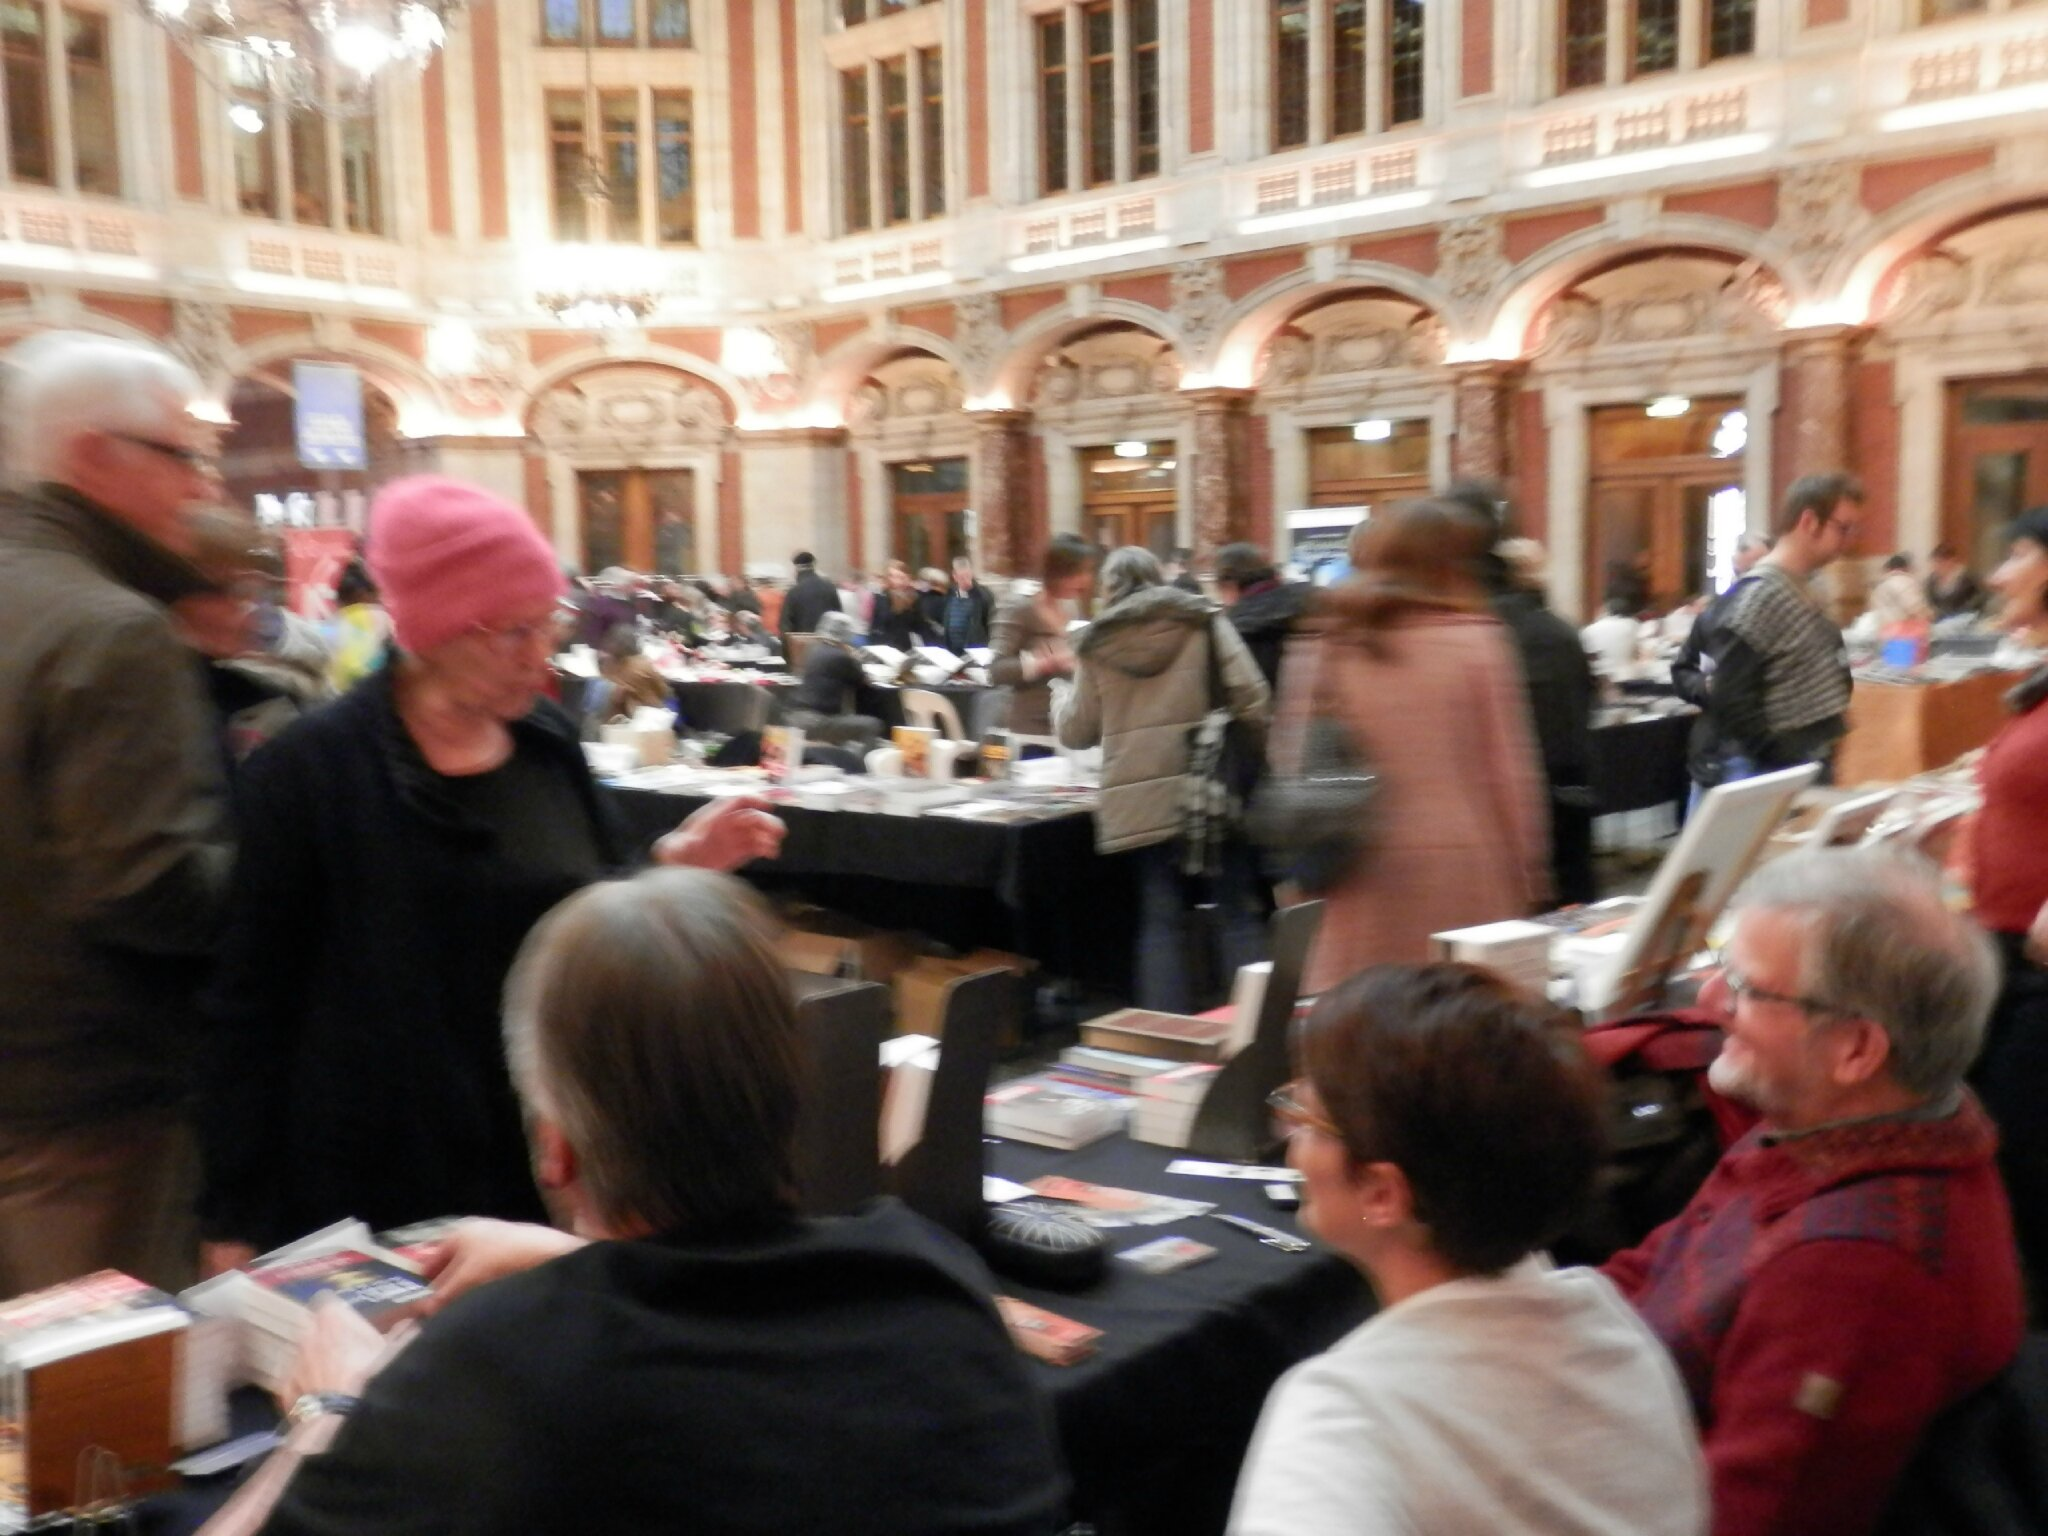 hivernales Lille 2013 008